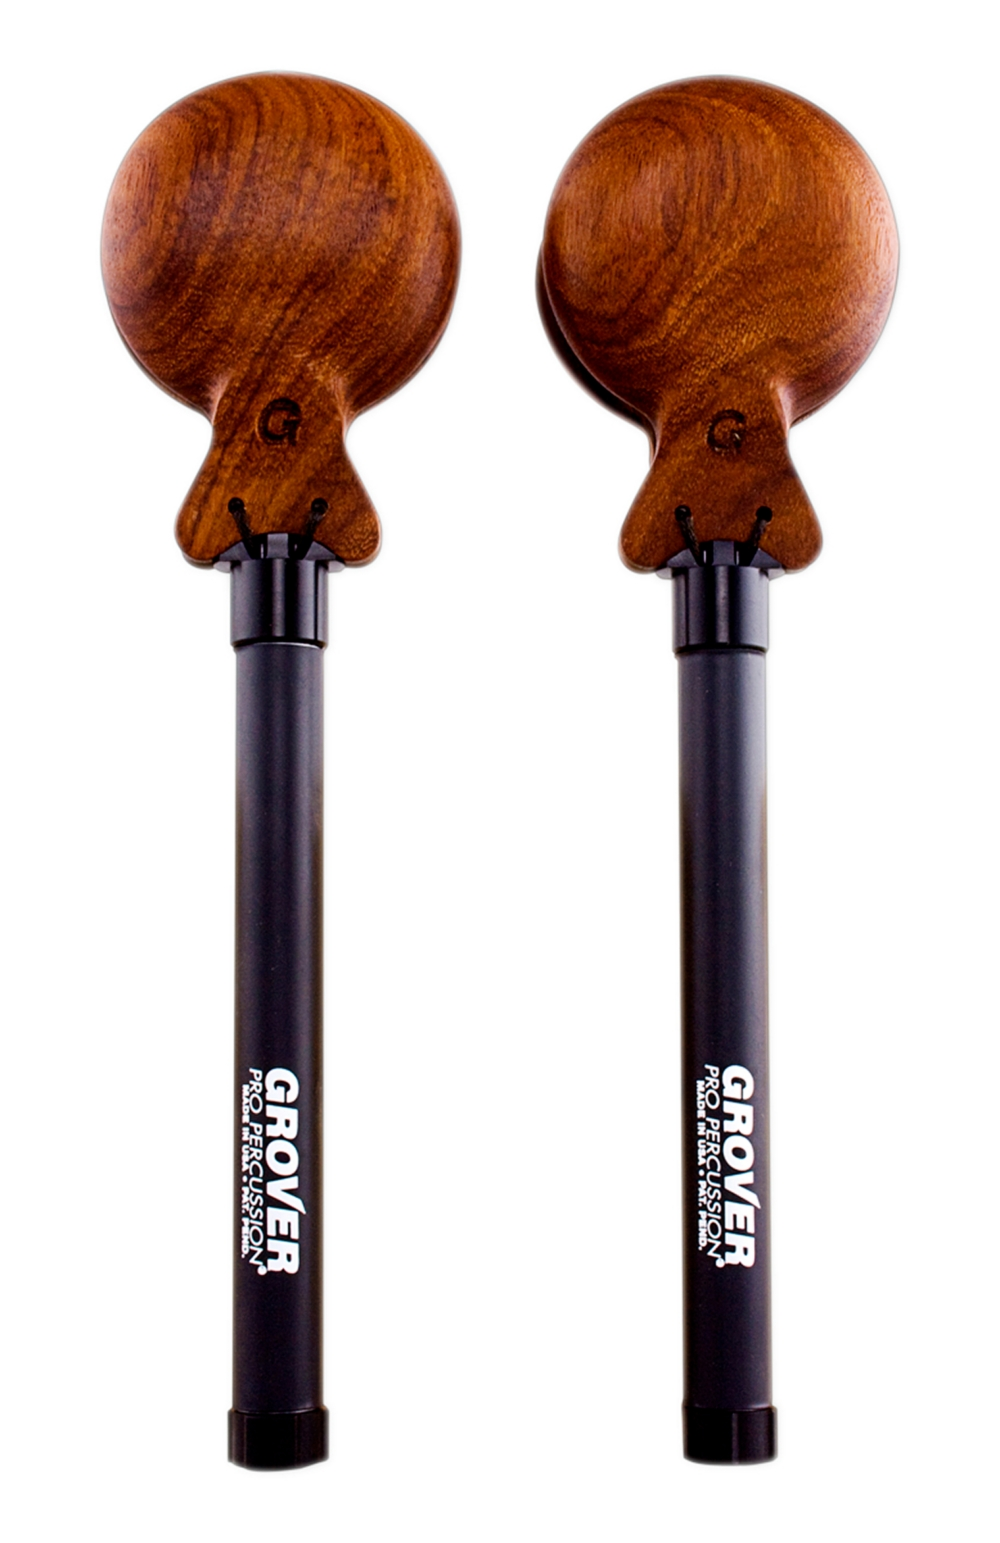 Grover Pro Granadillo Adjustable Tension Castanets (Pair) Large by Grover Pro